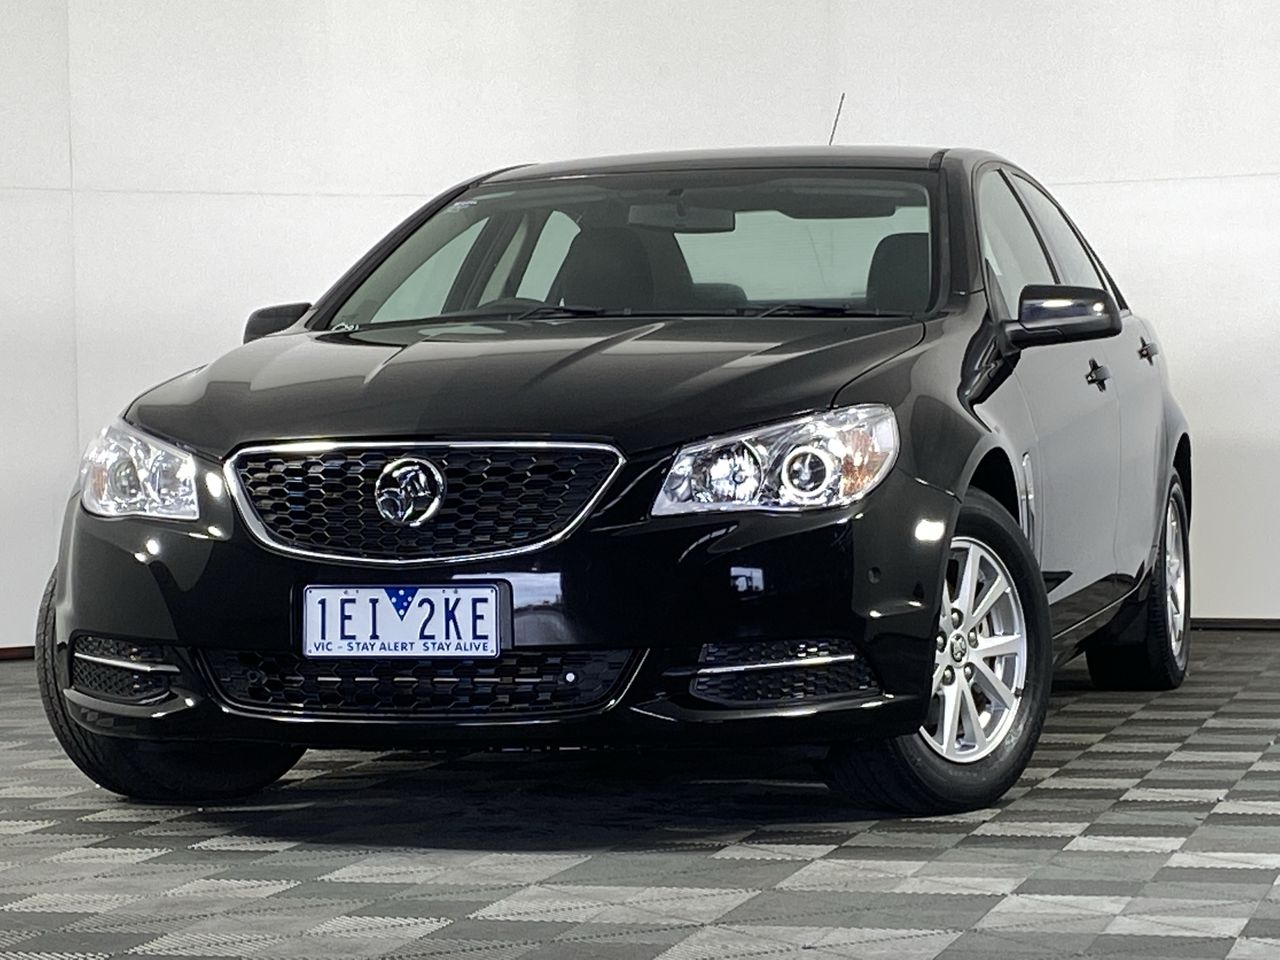 2013 Holden Commodore Evoke VF Automatic Sedan